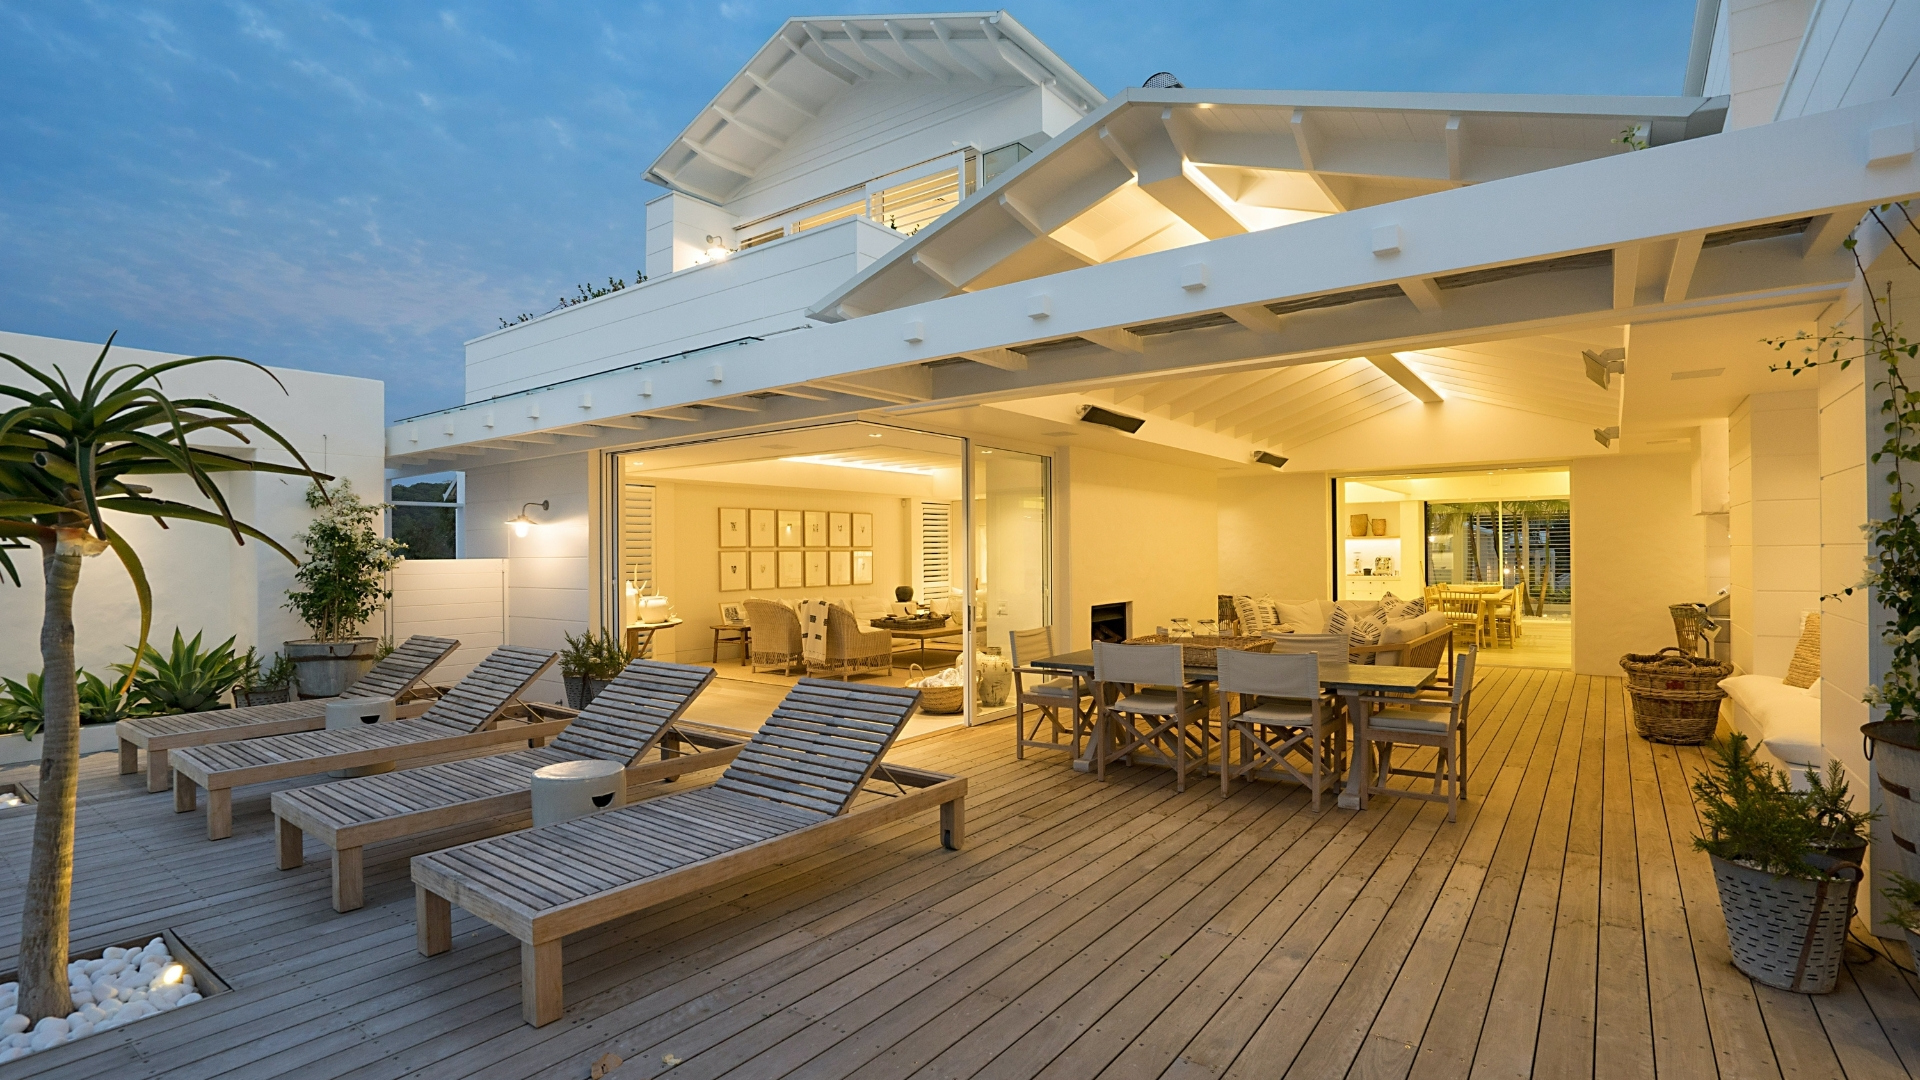 mcdermott remodeling deck shade and cover design